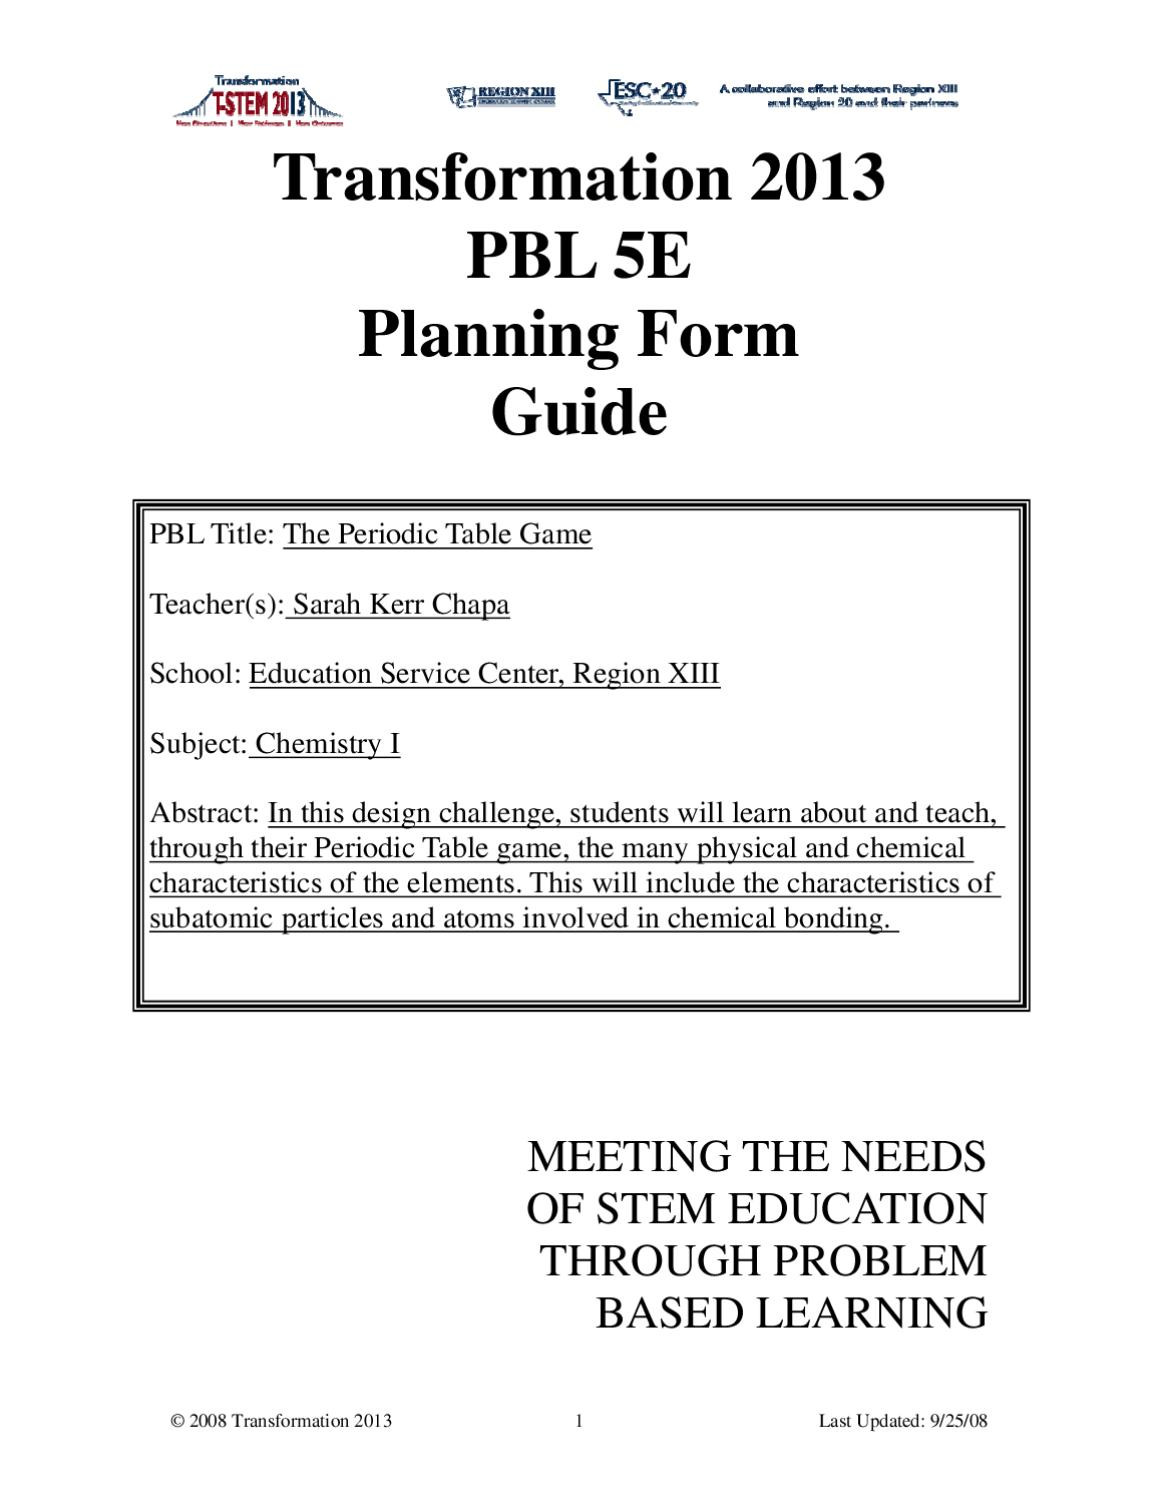 Periodic Table Puzzle Worksheet Answers atomic Structure Periodic Table by Jason Kozel issuu